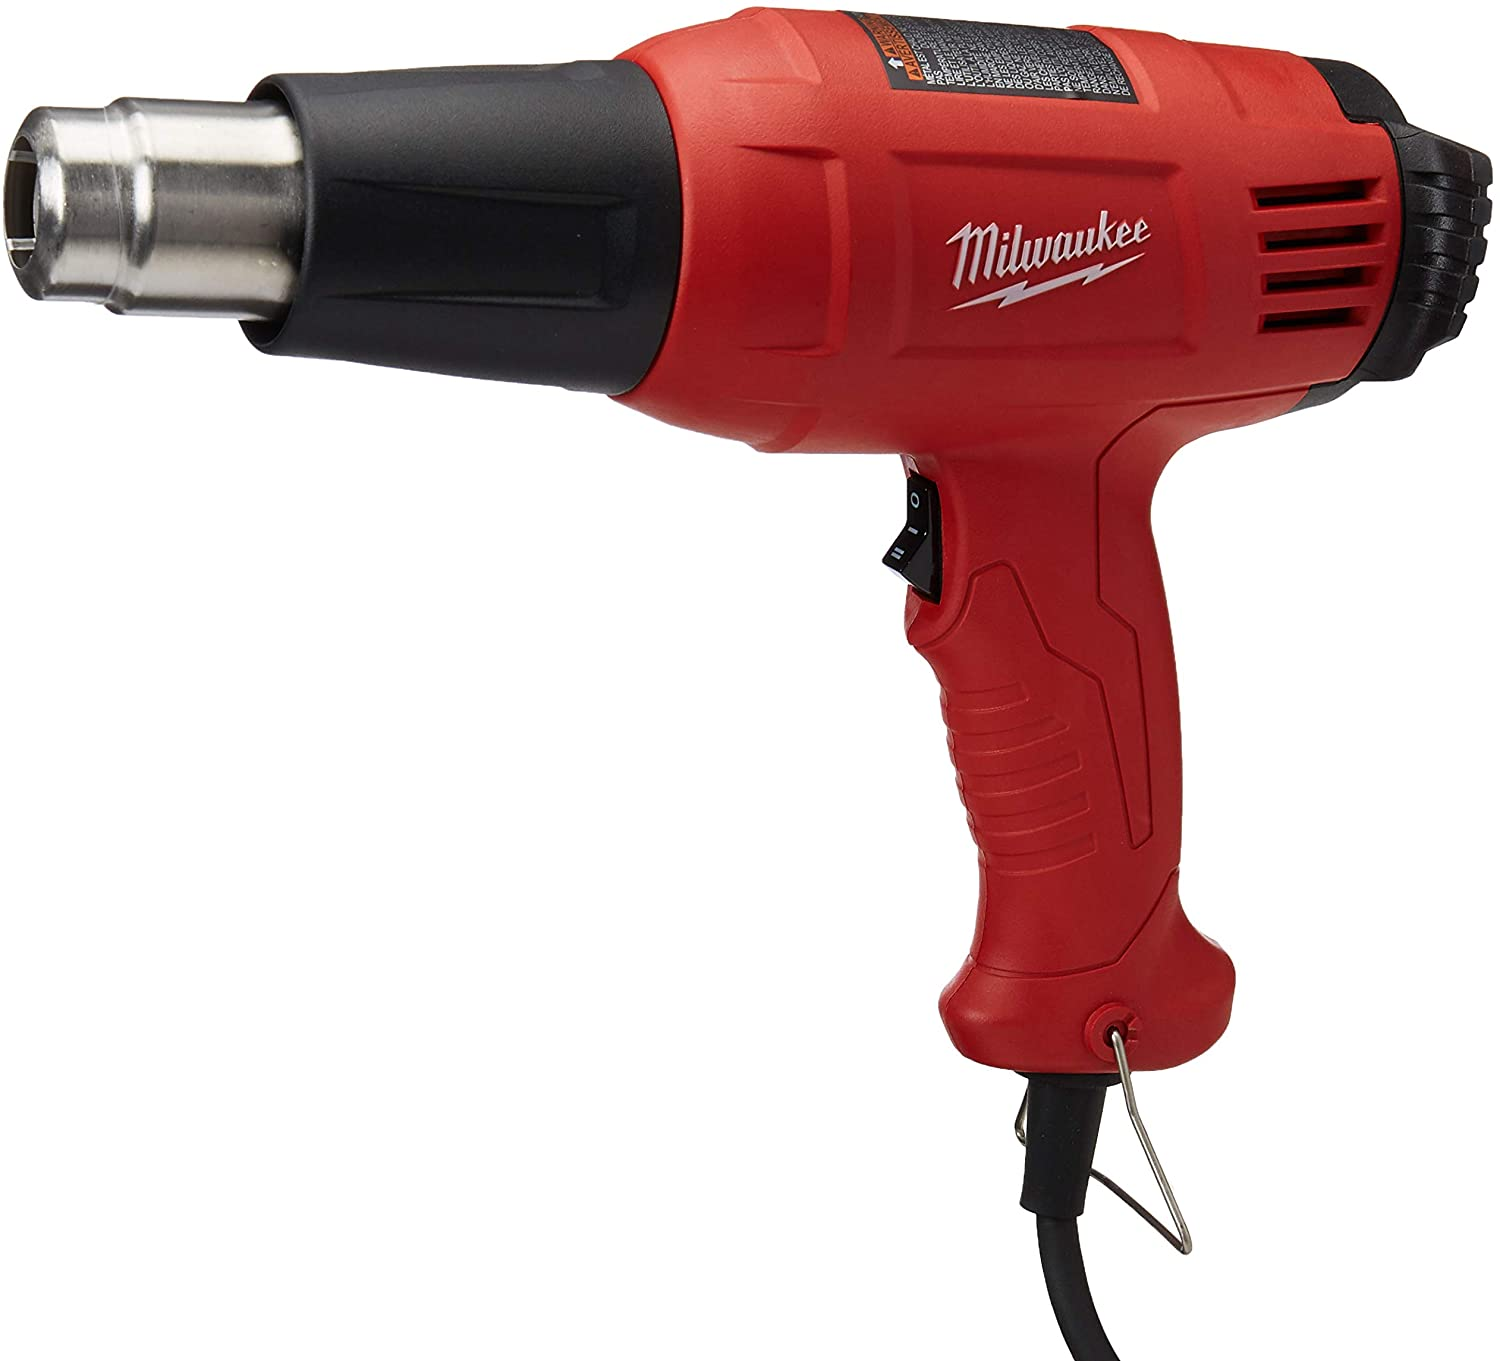 A red Milwaukee-brand heat gun that can be used for frozen pipes